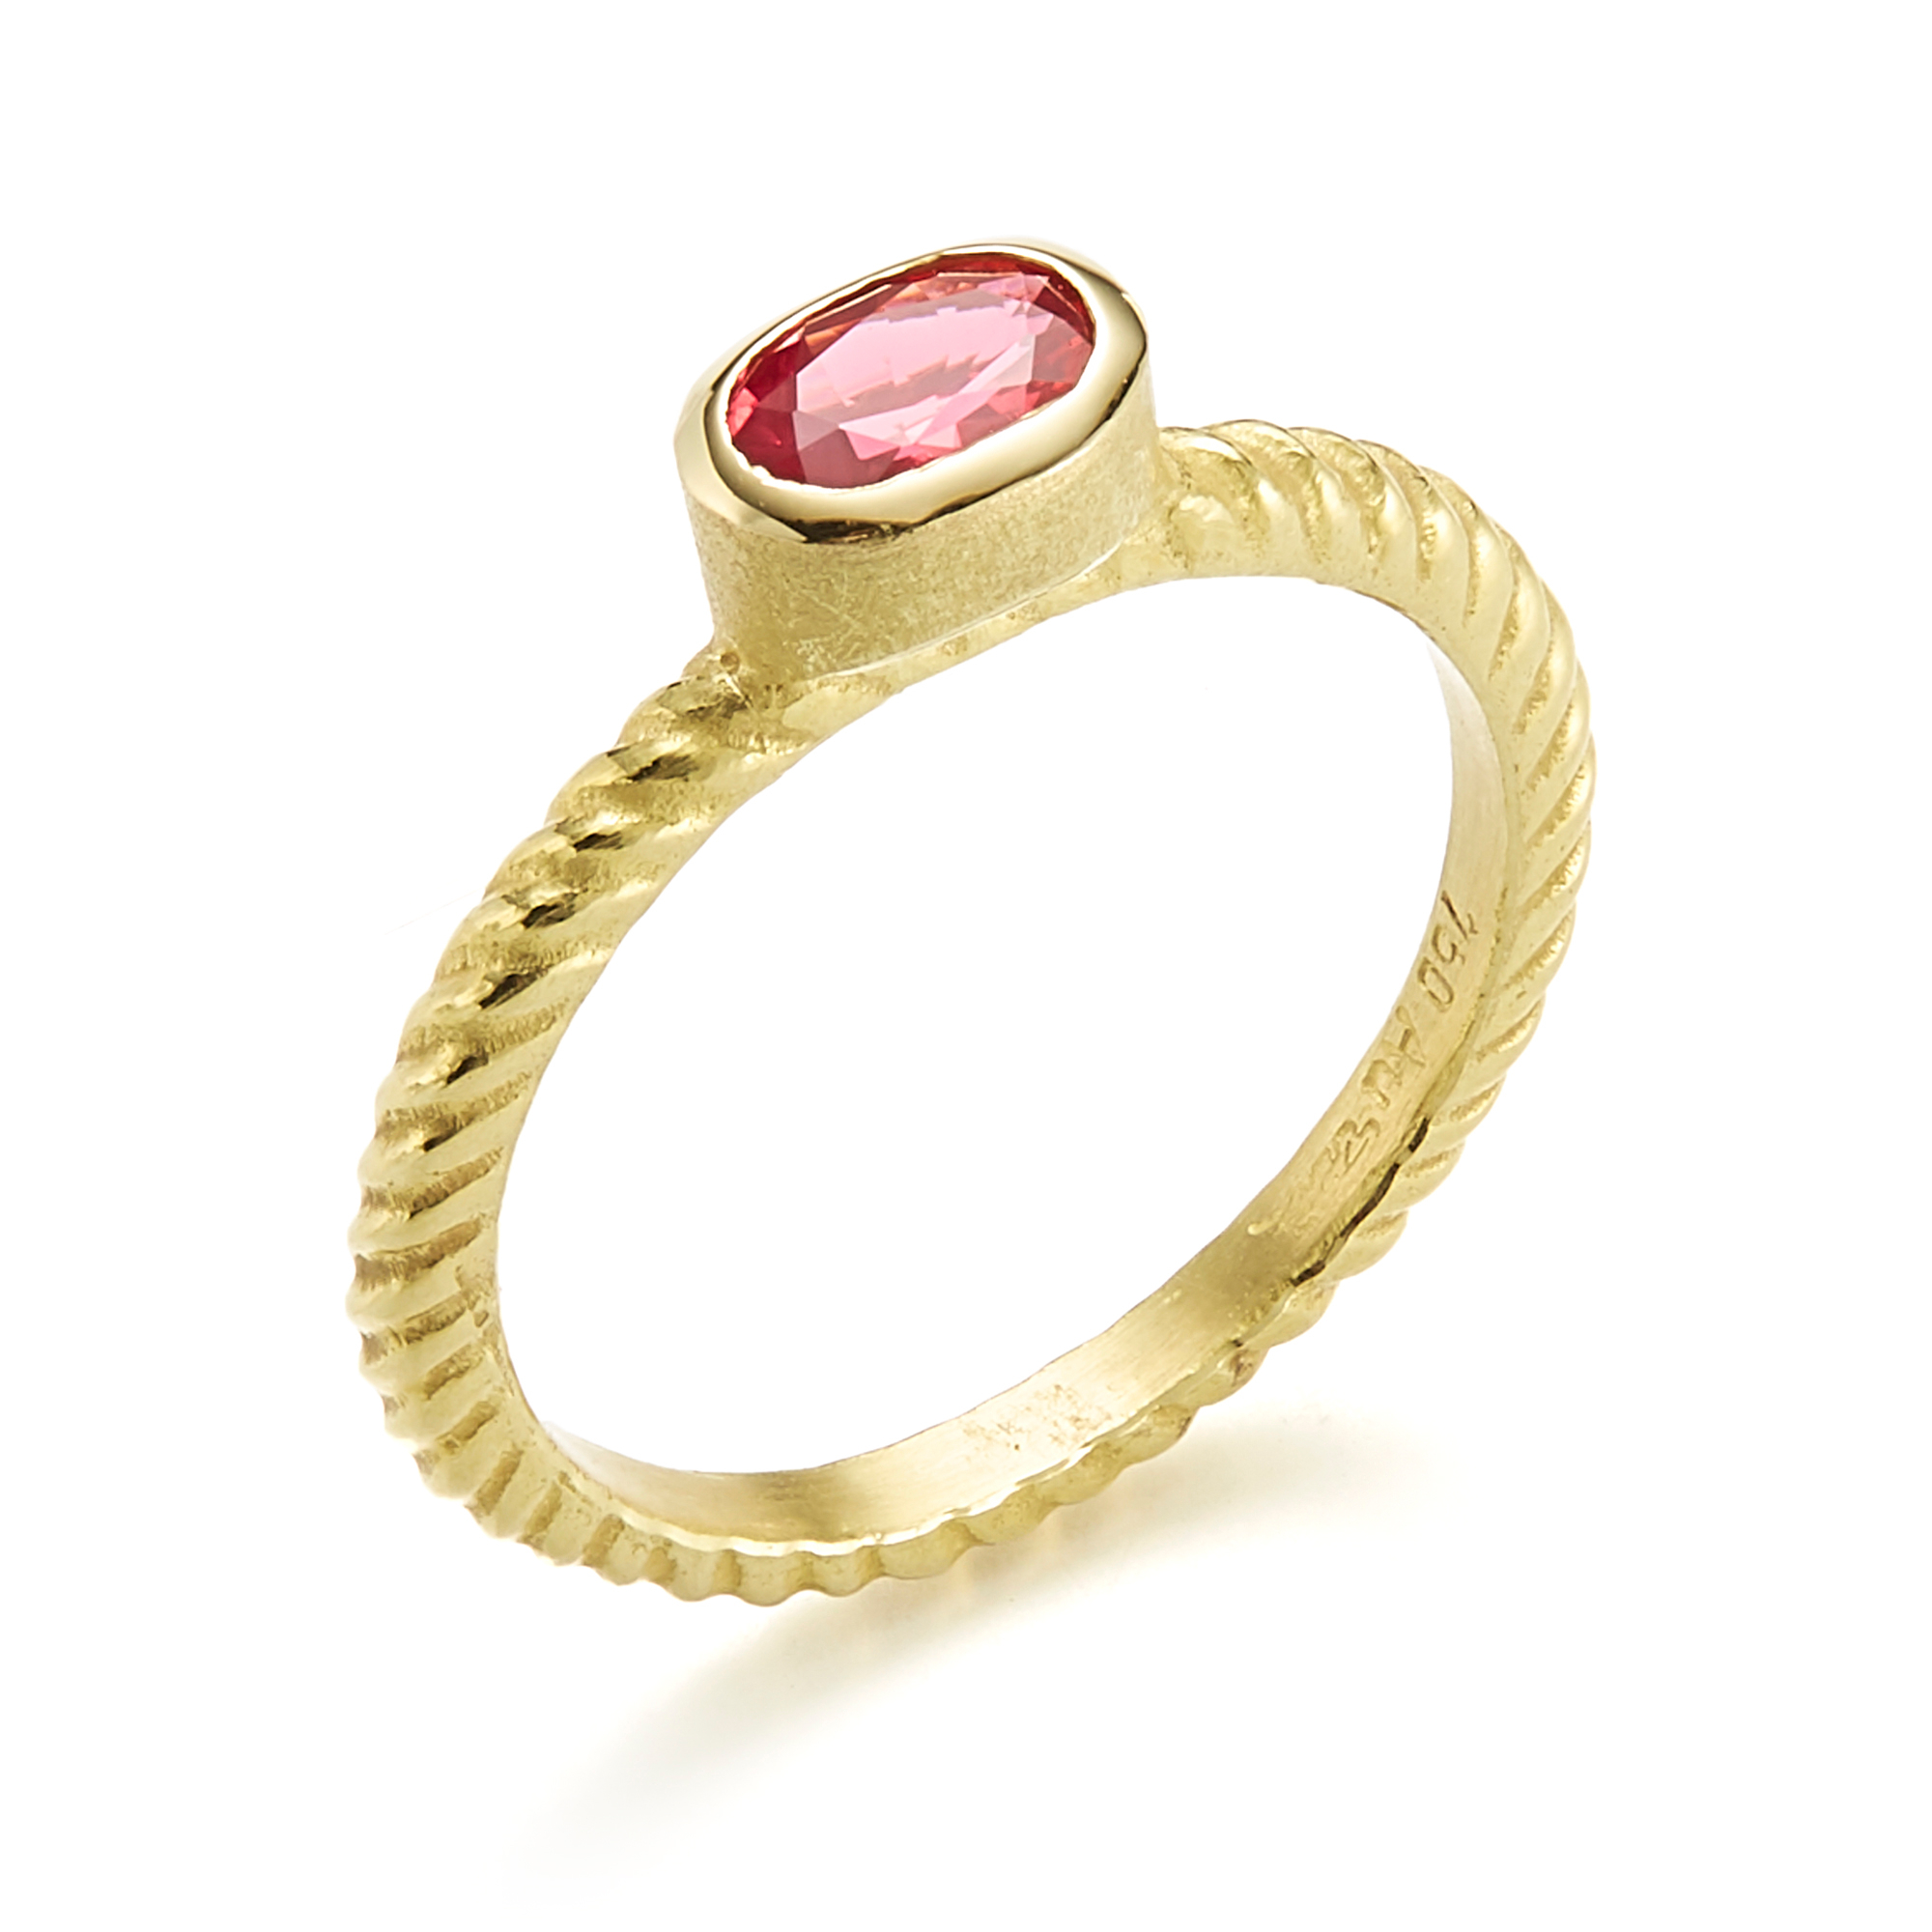 Barbara Heinrich Pink Spinel Oval Braided Stacking Ring